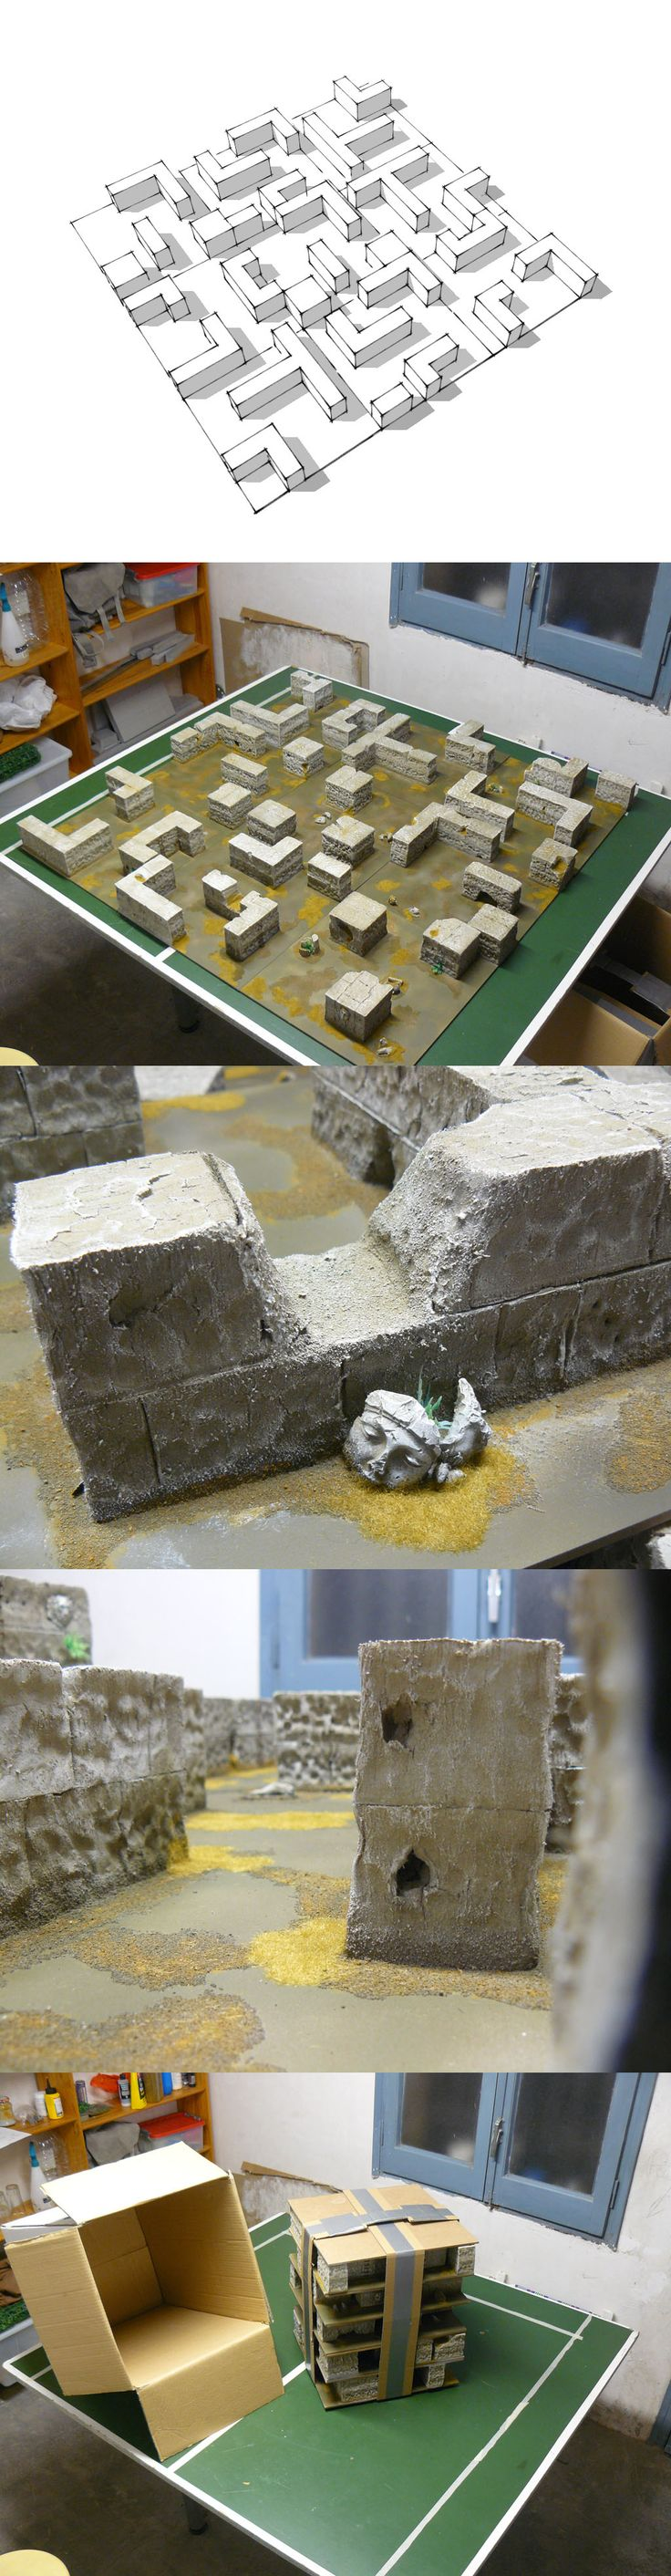 Modular Infinity board by the Barcelona team miniatures minis tabletop resource tool how to tutorial instructions | Create your own roleplaying game material w/ RPG Bard: www.rpgbard.com | Writing inspiration for Dungeons and Dragons DND D&D Pathfinder PFRPG Warhammer 40k Star Wars Shadowrun Call of Cthulhu Lord of the Rings LoTR + d20 fantasy science fiction scifi horror design | Not our art: click artwork for source